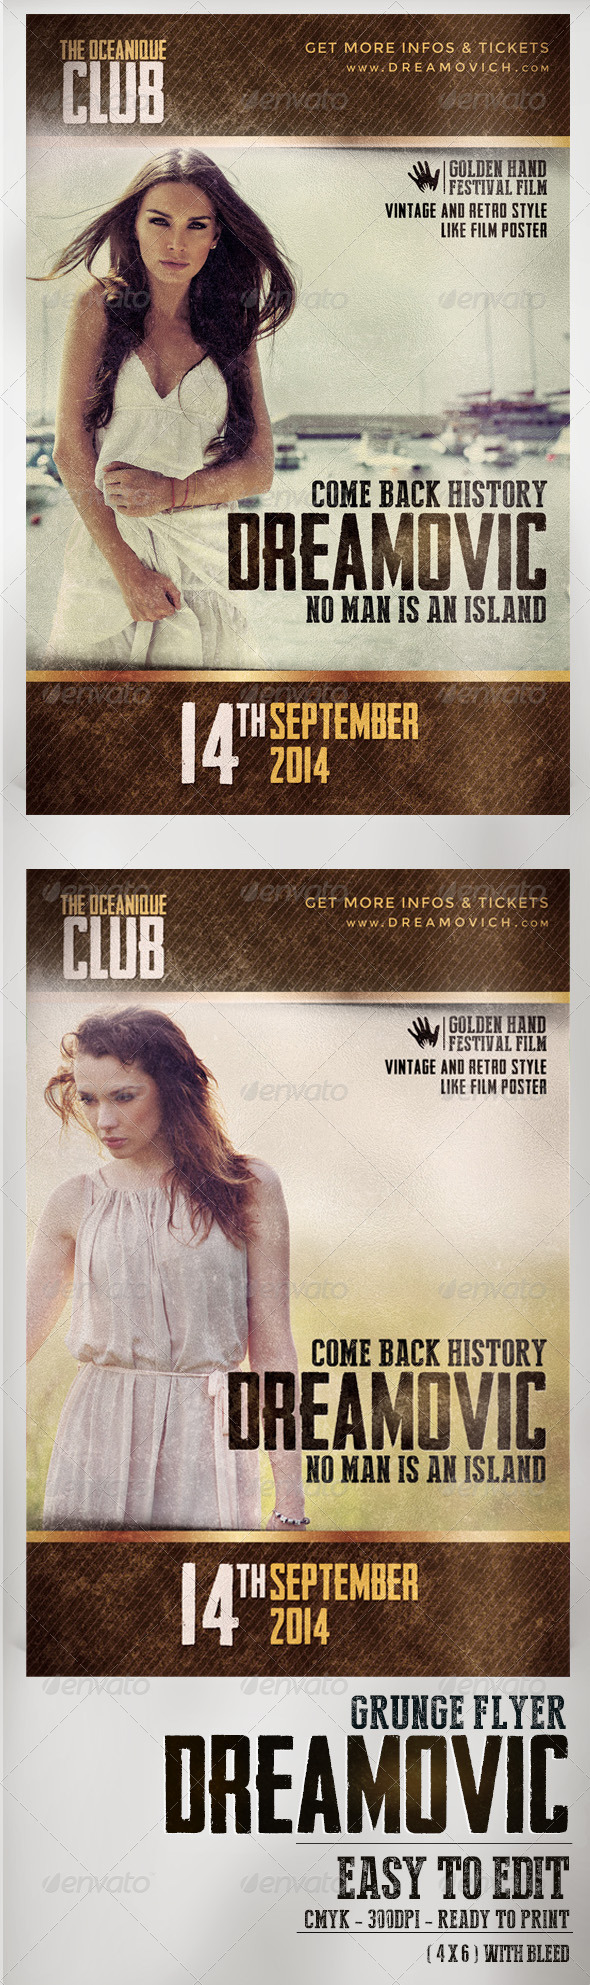 Vintage Dreamovic Flyer Template